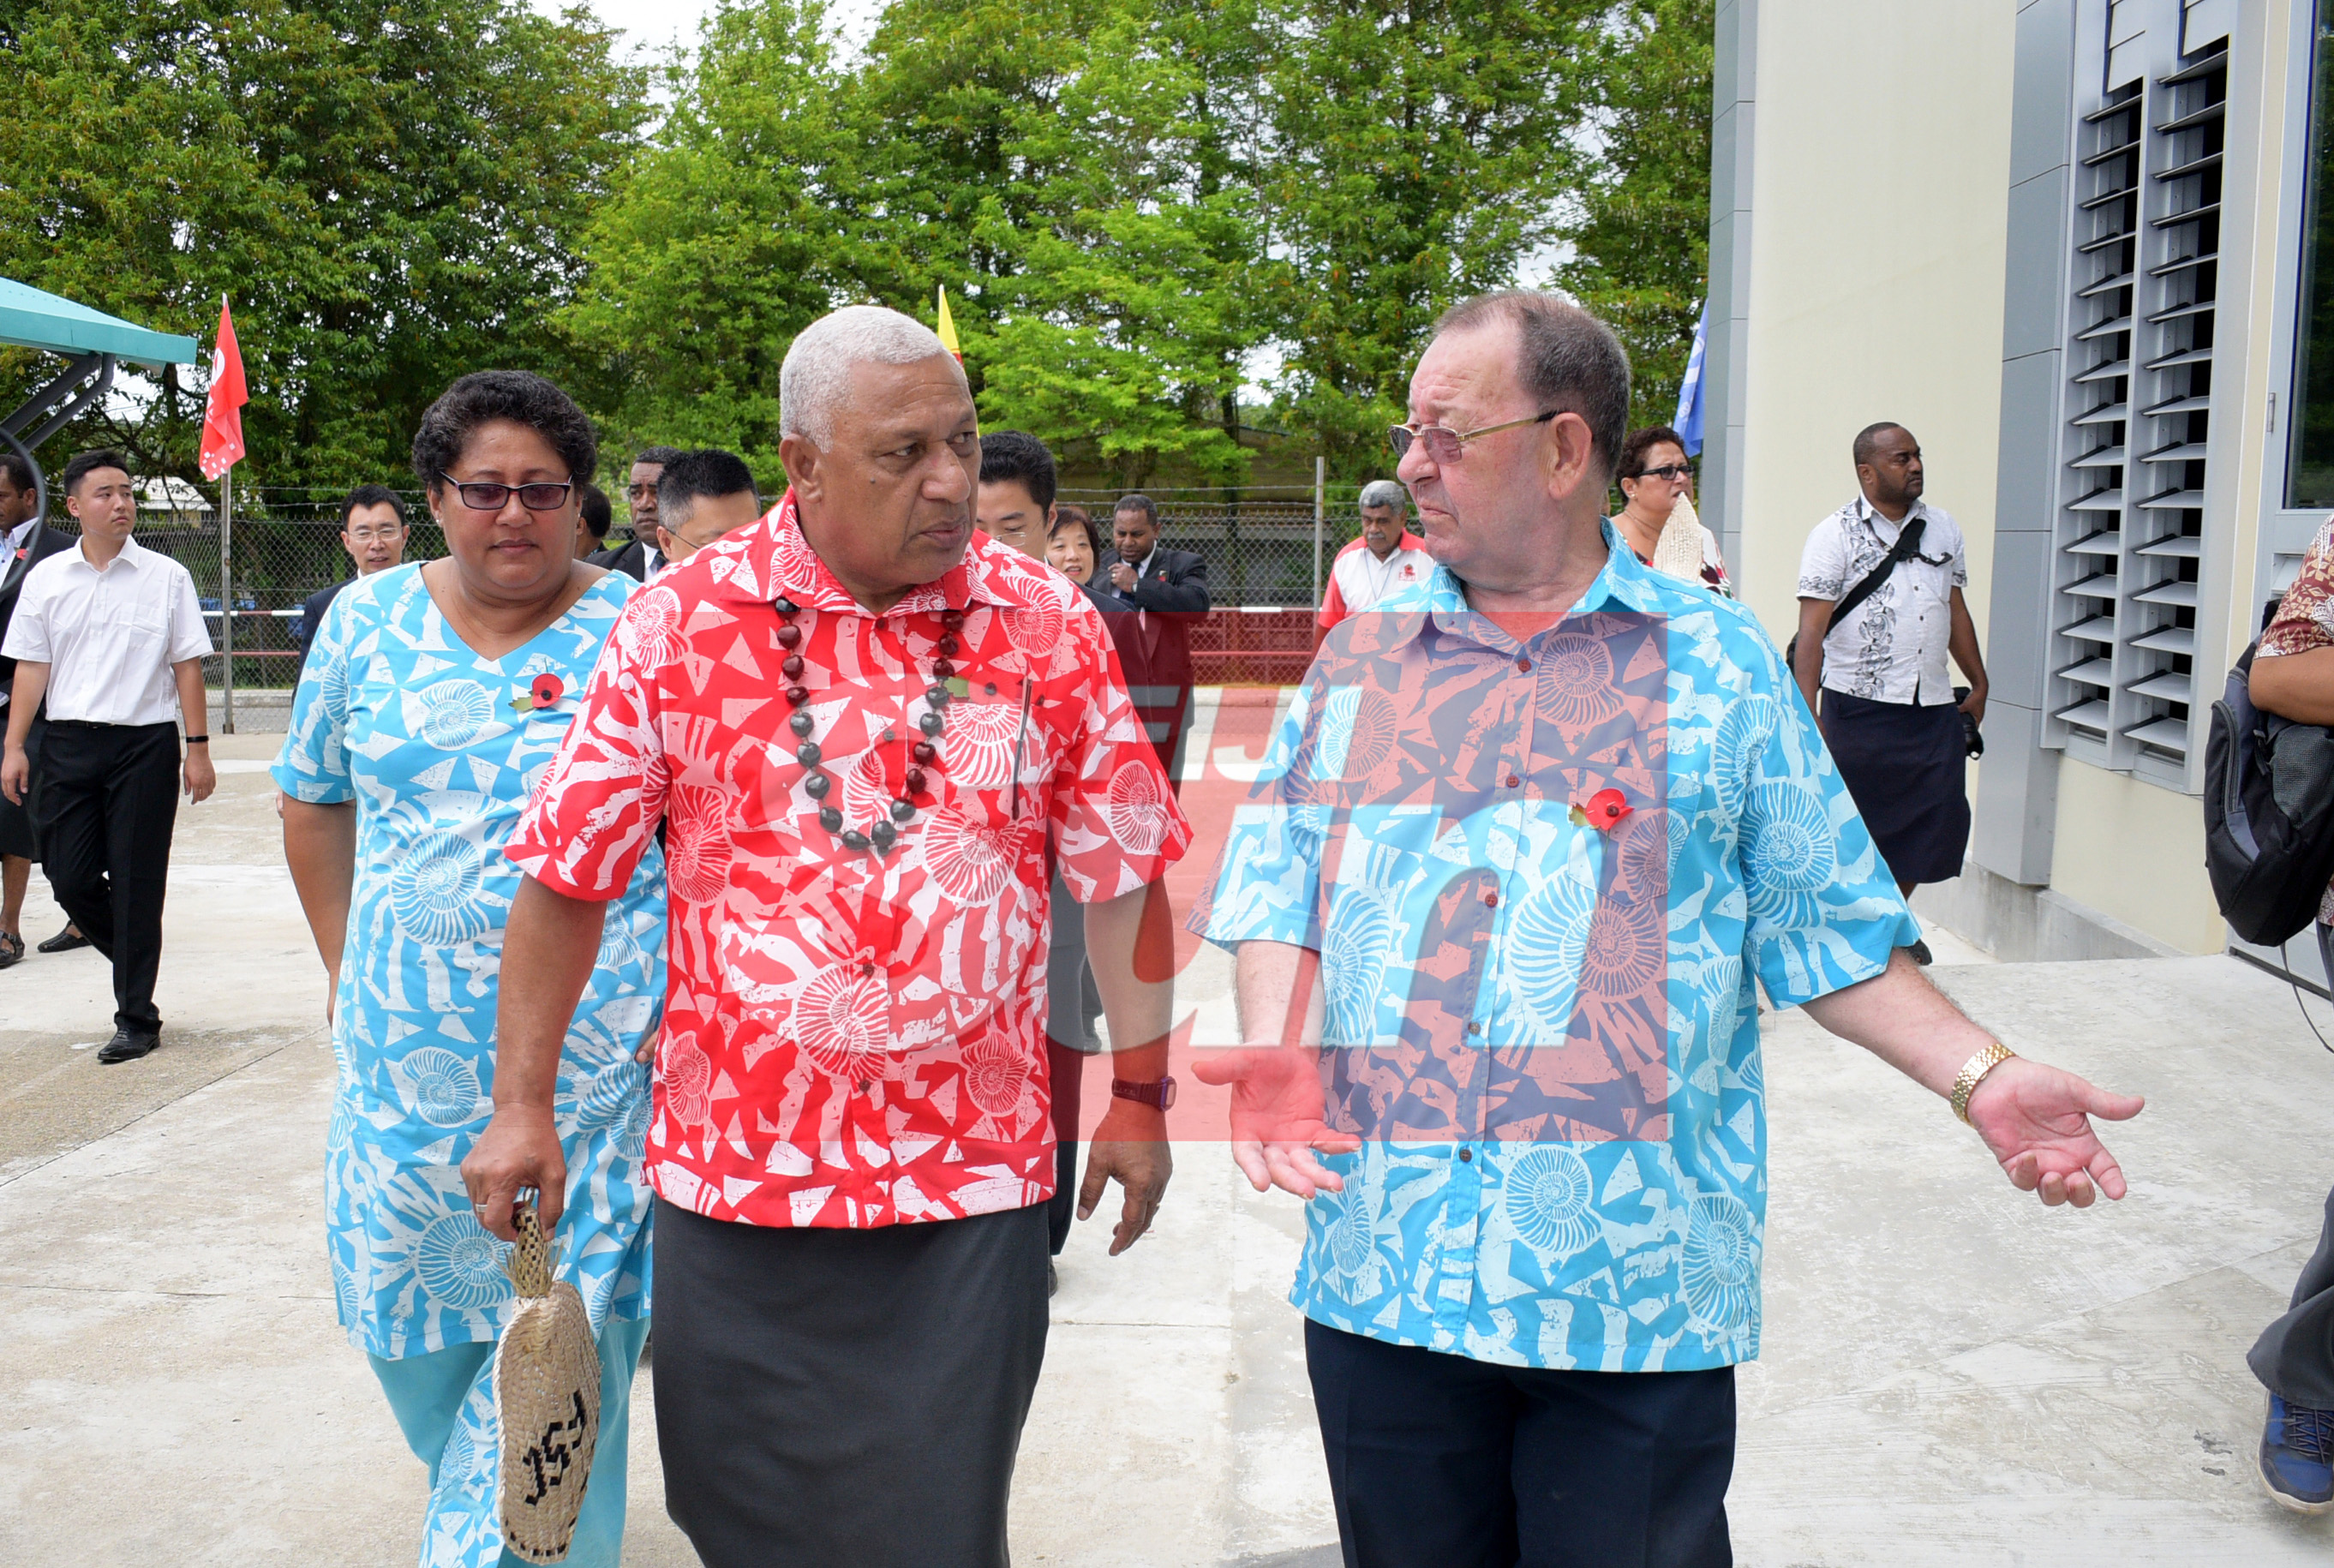 Prime Minister Voreqe Bainimarama take a tour of renovated Vodafone Arena with Fiji Sports Council Chief Executive Officer, Litiana Loabuka (left) and Board Chairman Peter Mazey following the opening on November 8, 2019. Photo: Ronald Kumar.